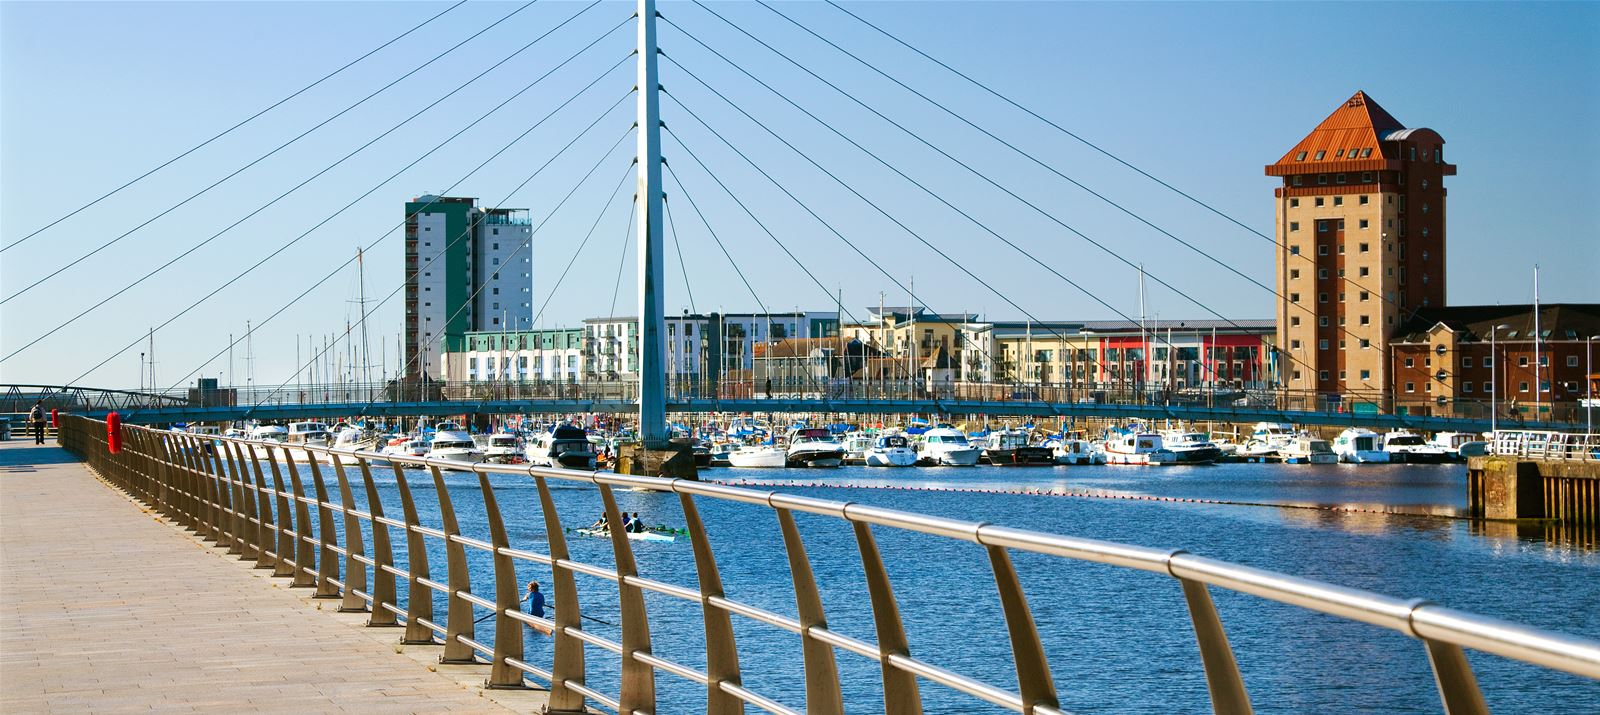 Taxi Swansea – Luton Airport from £249.00*